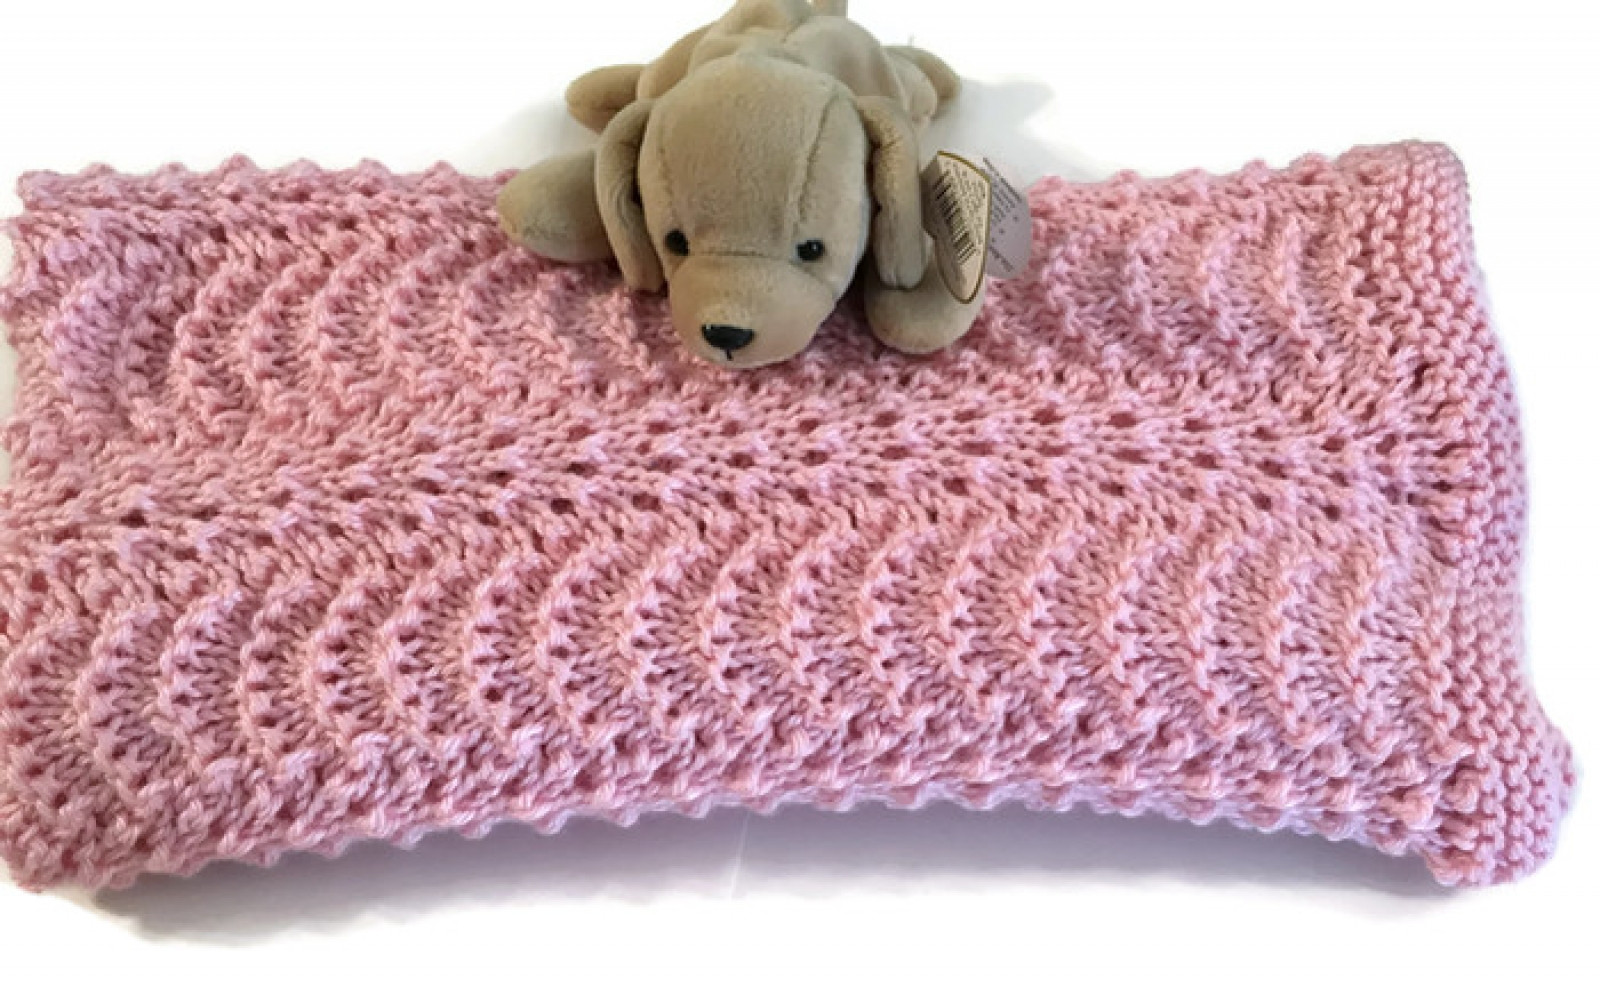 Soft Baby Yarn Luxury Handknit Baby Blanket New Girl Receiving Lace Caron Simply Of Perfect 42 Images soft Baby Yarn